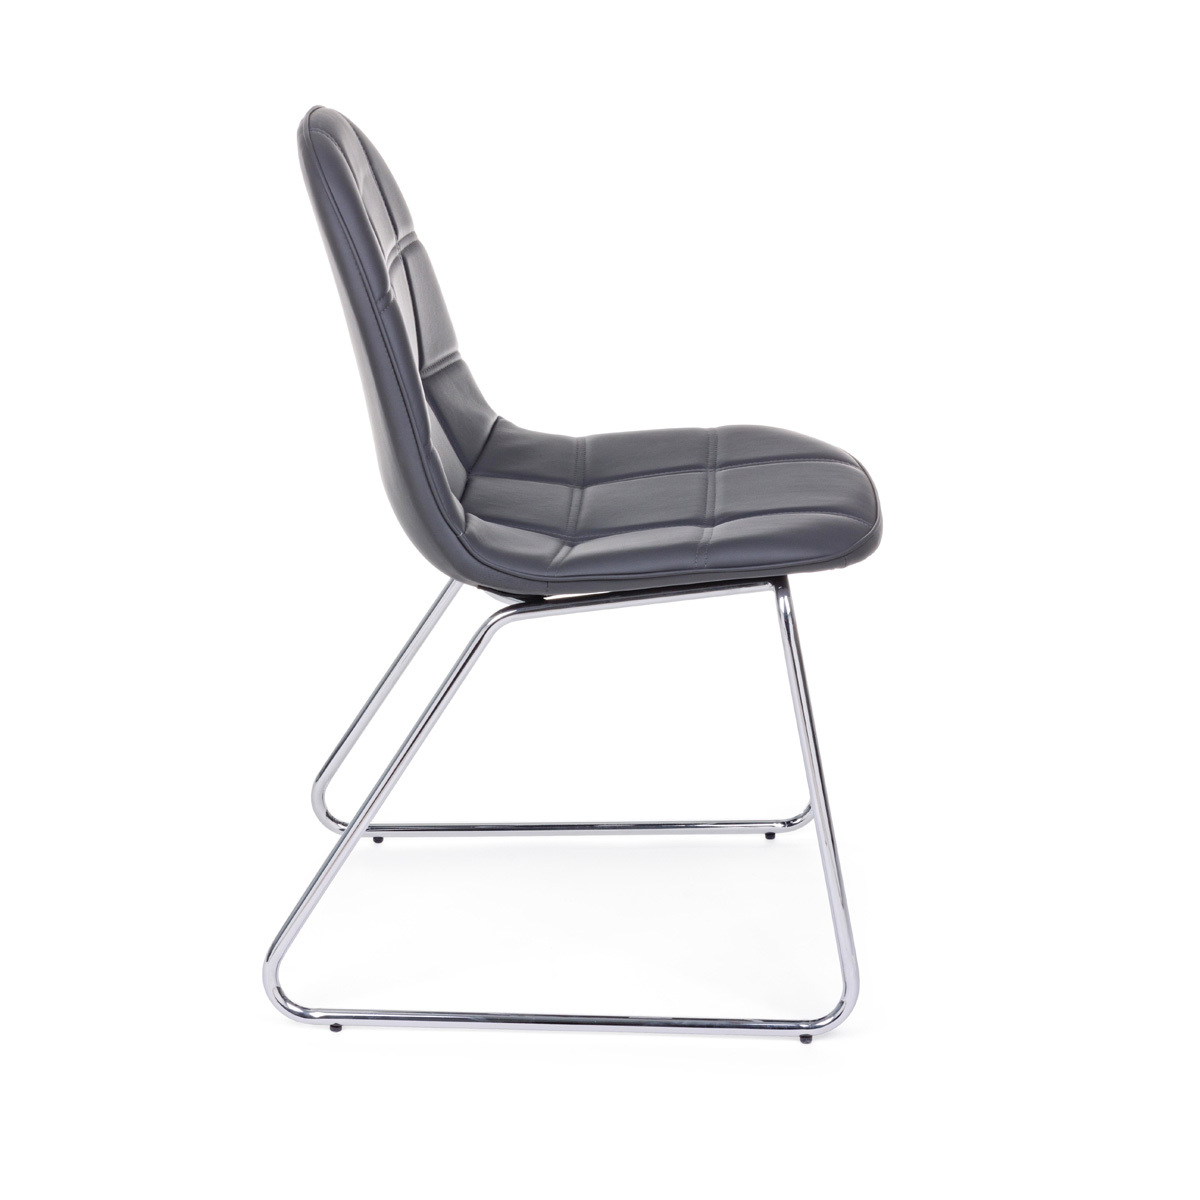 Photos 2: Bizzotto Chair in metal and eco-leather - anthracite 0731711